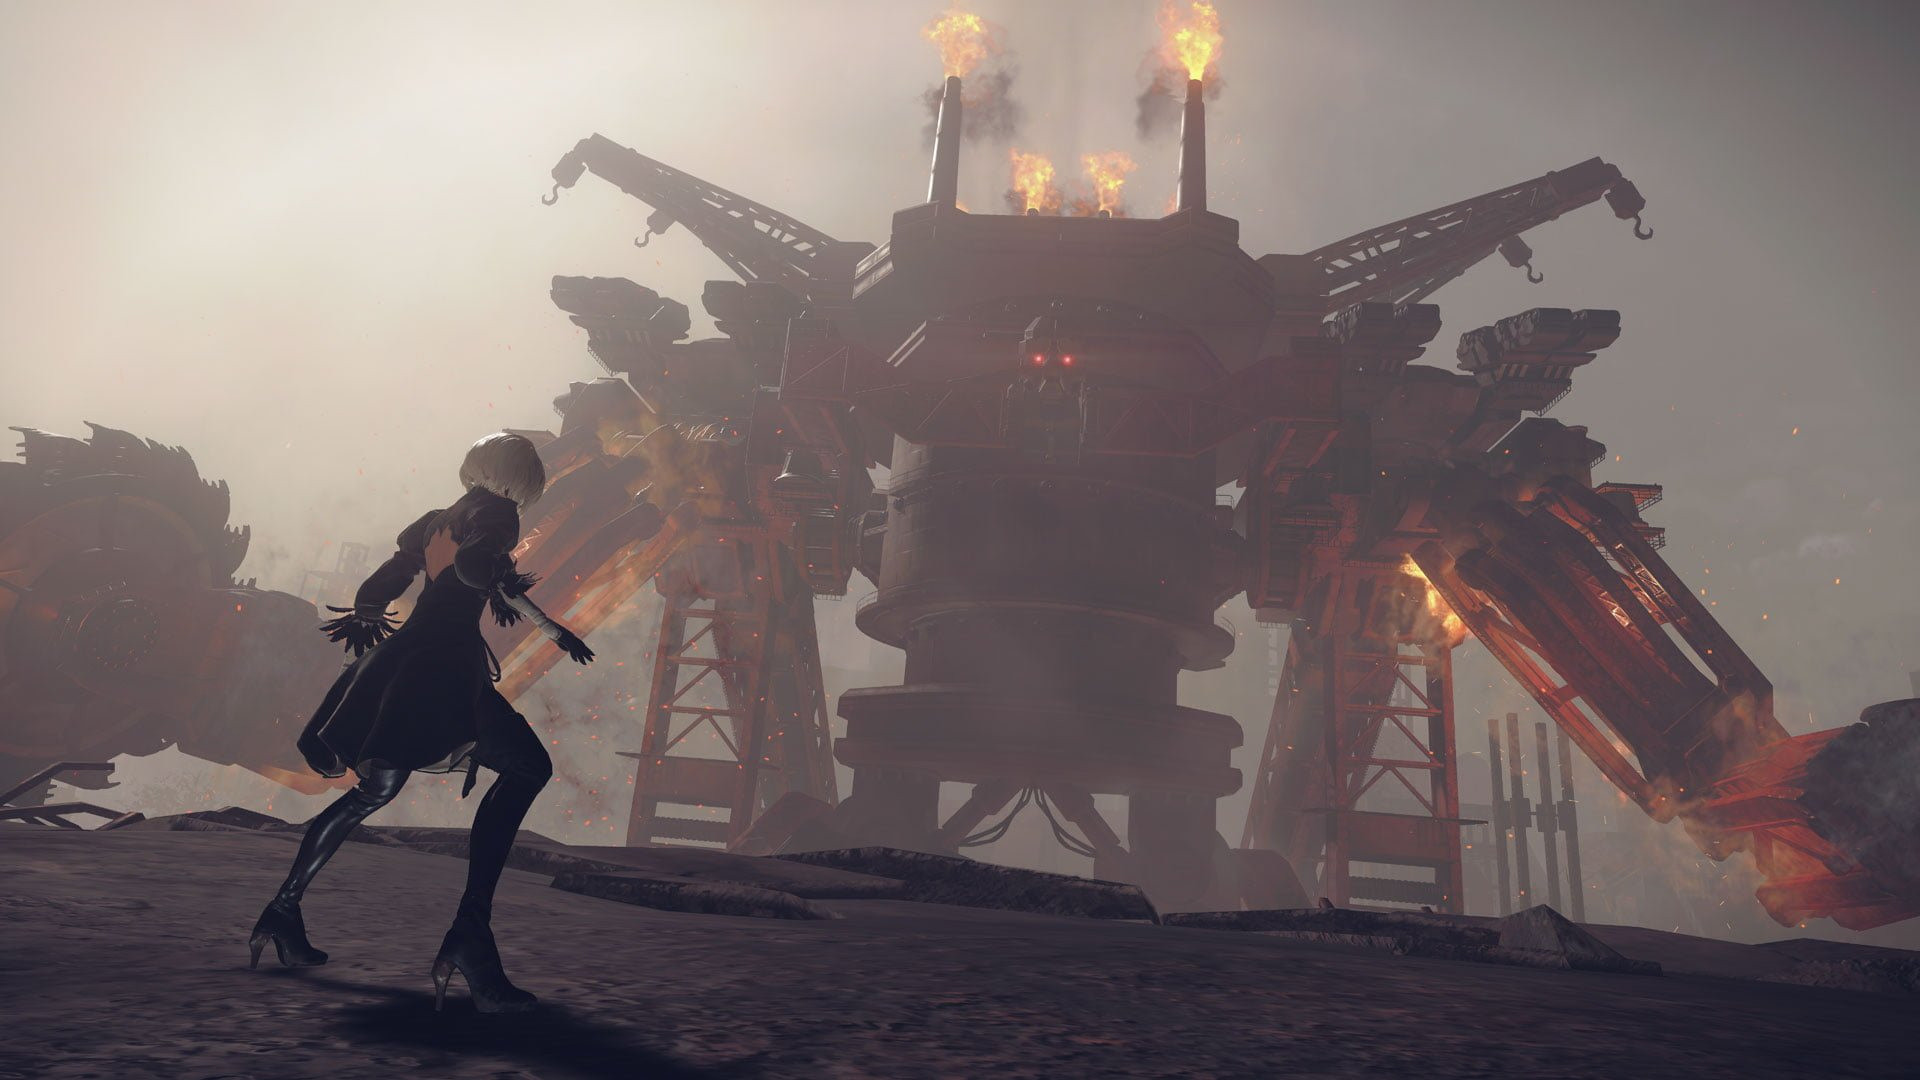 Quattro chiacchiere su NieR: Automata Game of the YoRHa Edition 2